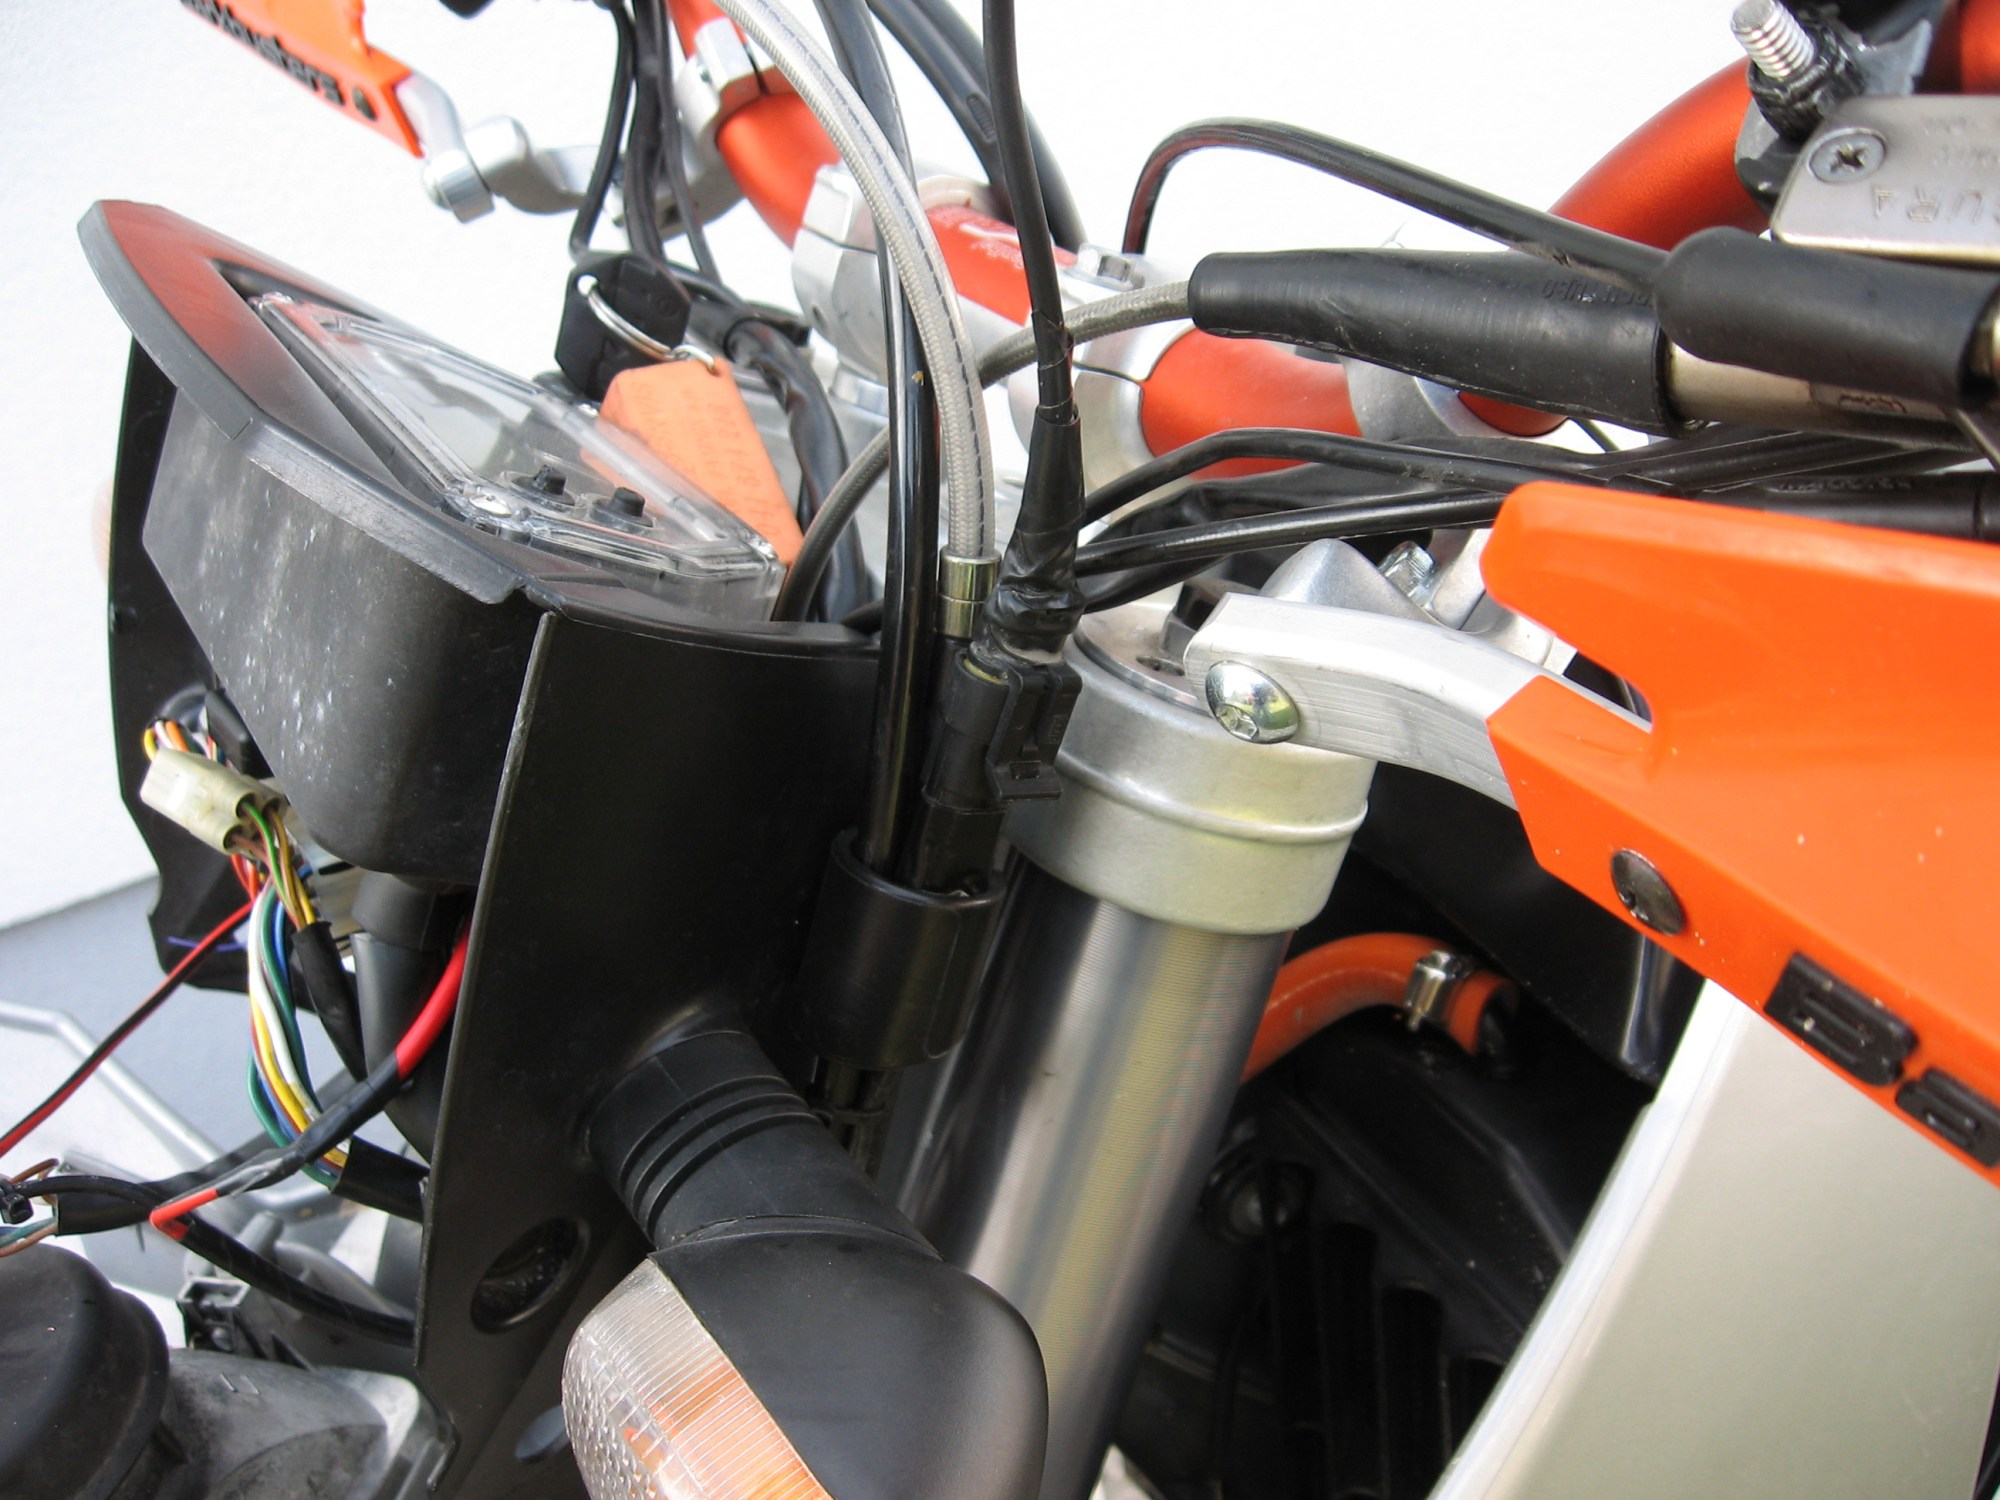 hight resolution of modifications archives adventure dual sport riding img 4773 ktm 640 fuse box